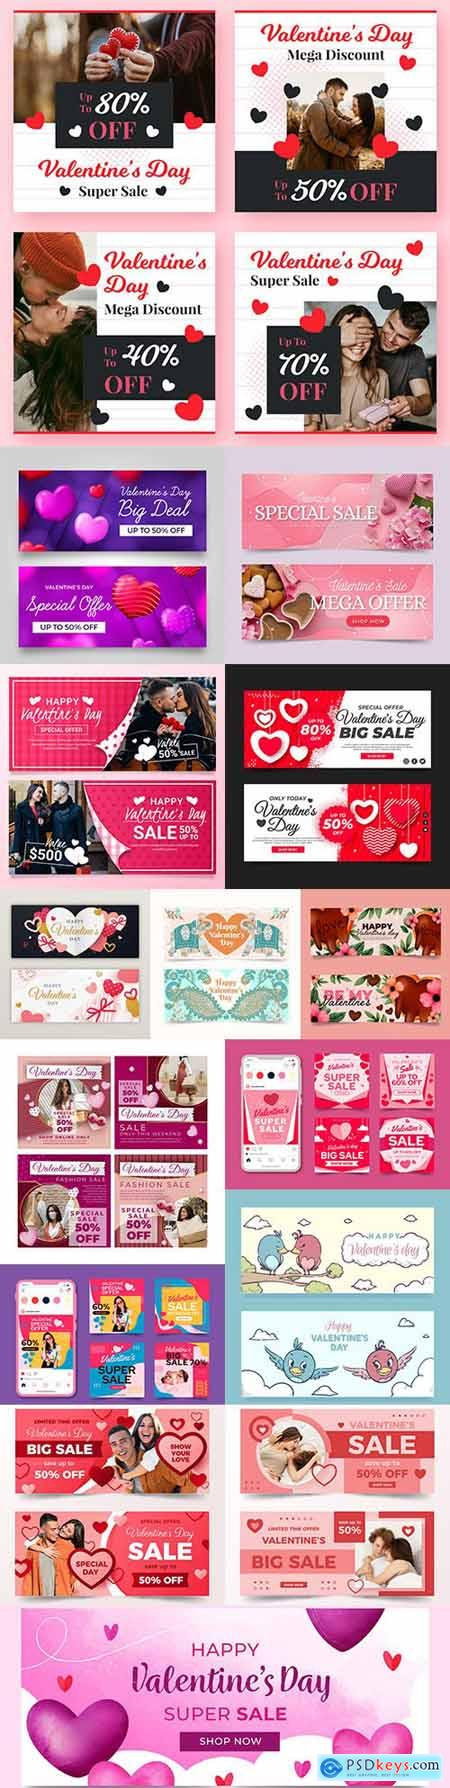 Valentines Day banner and holiday sales design template